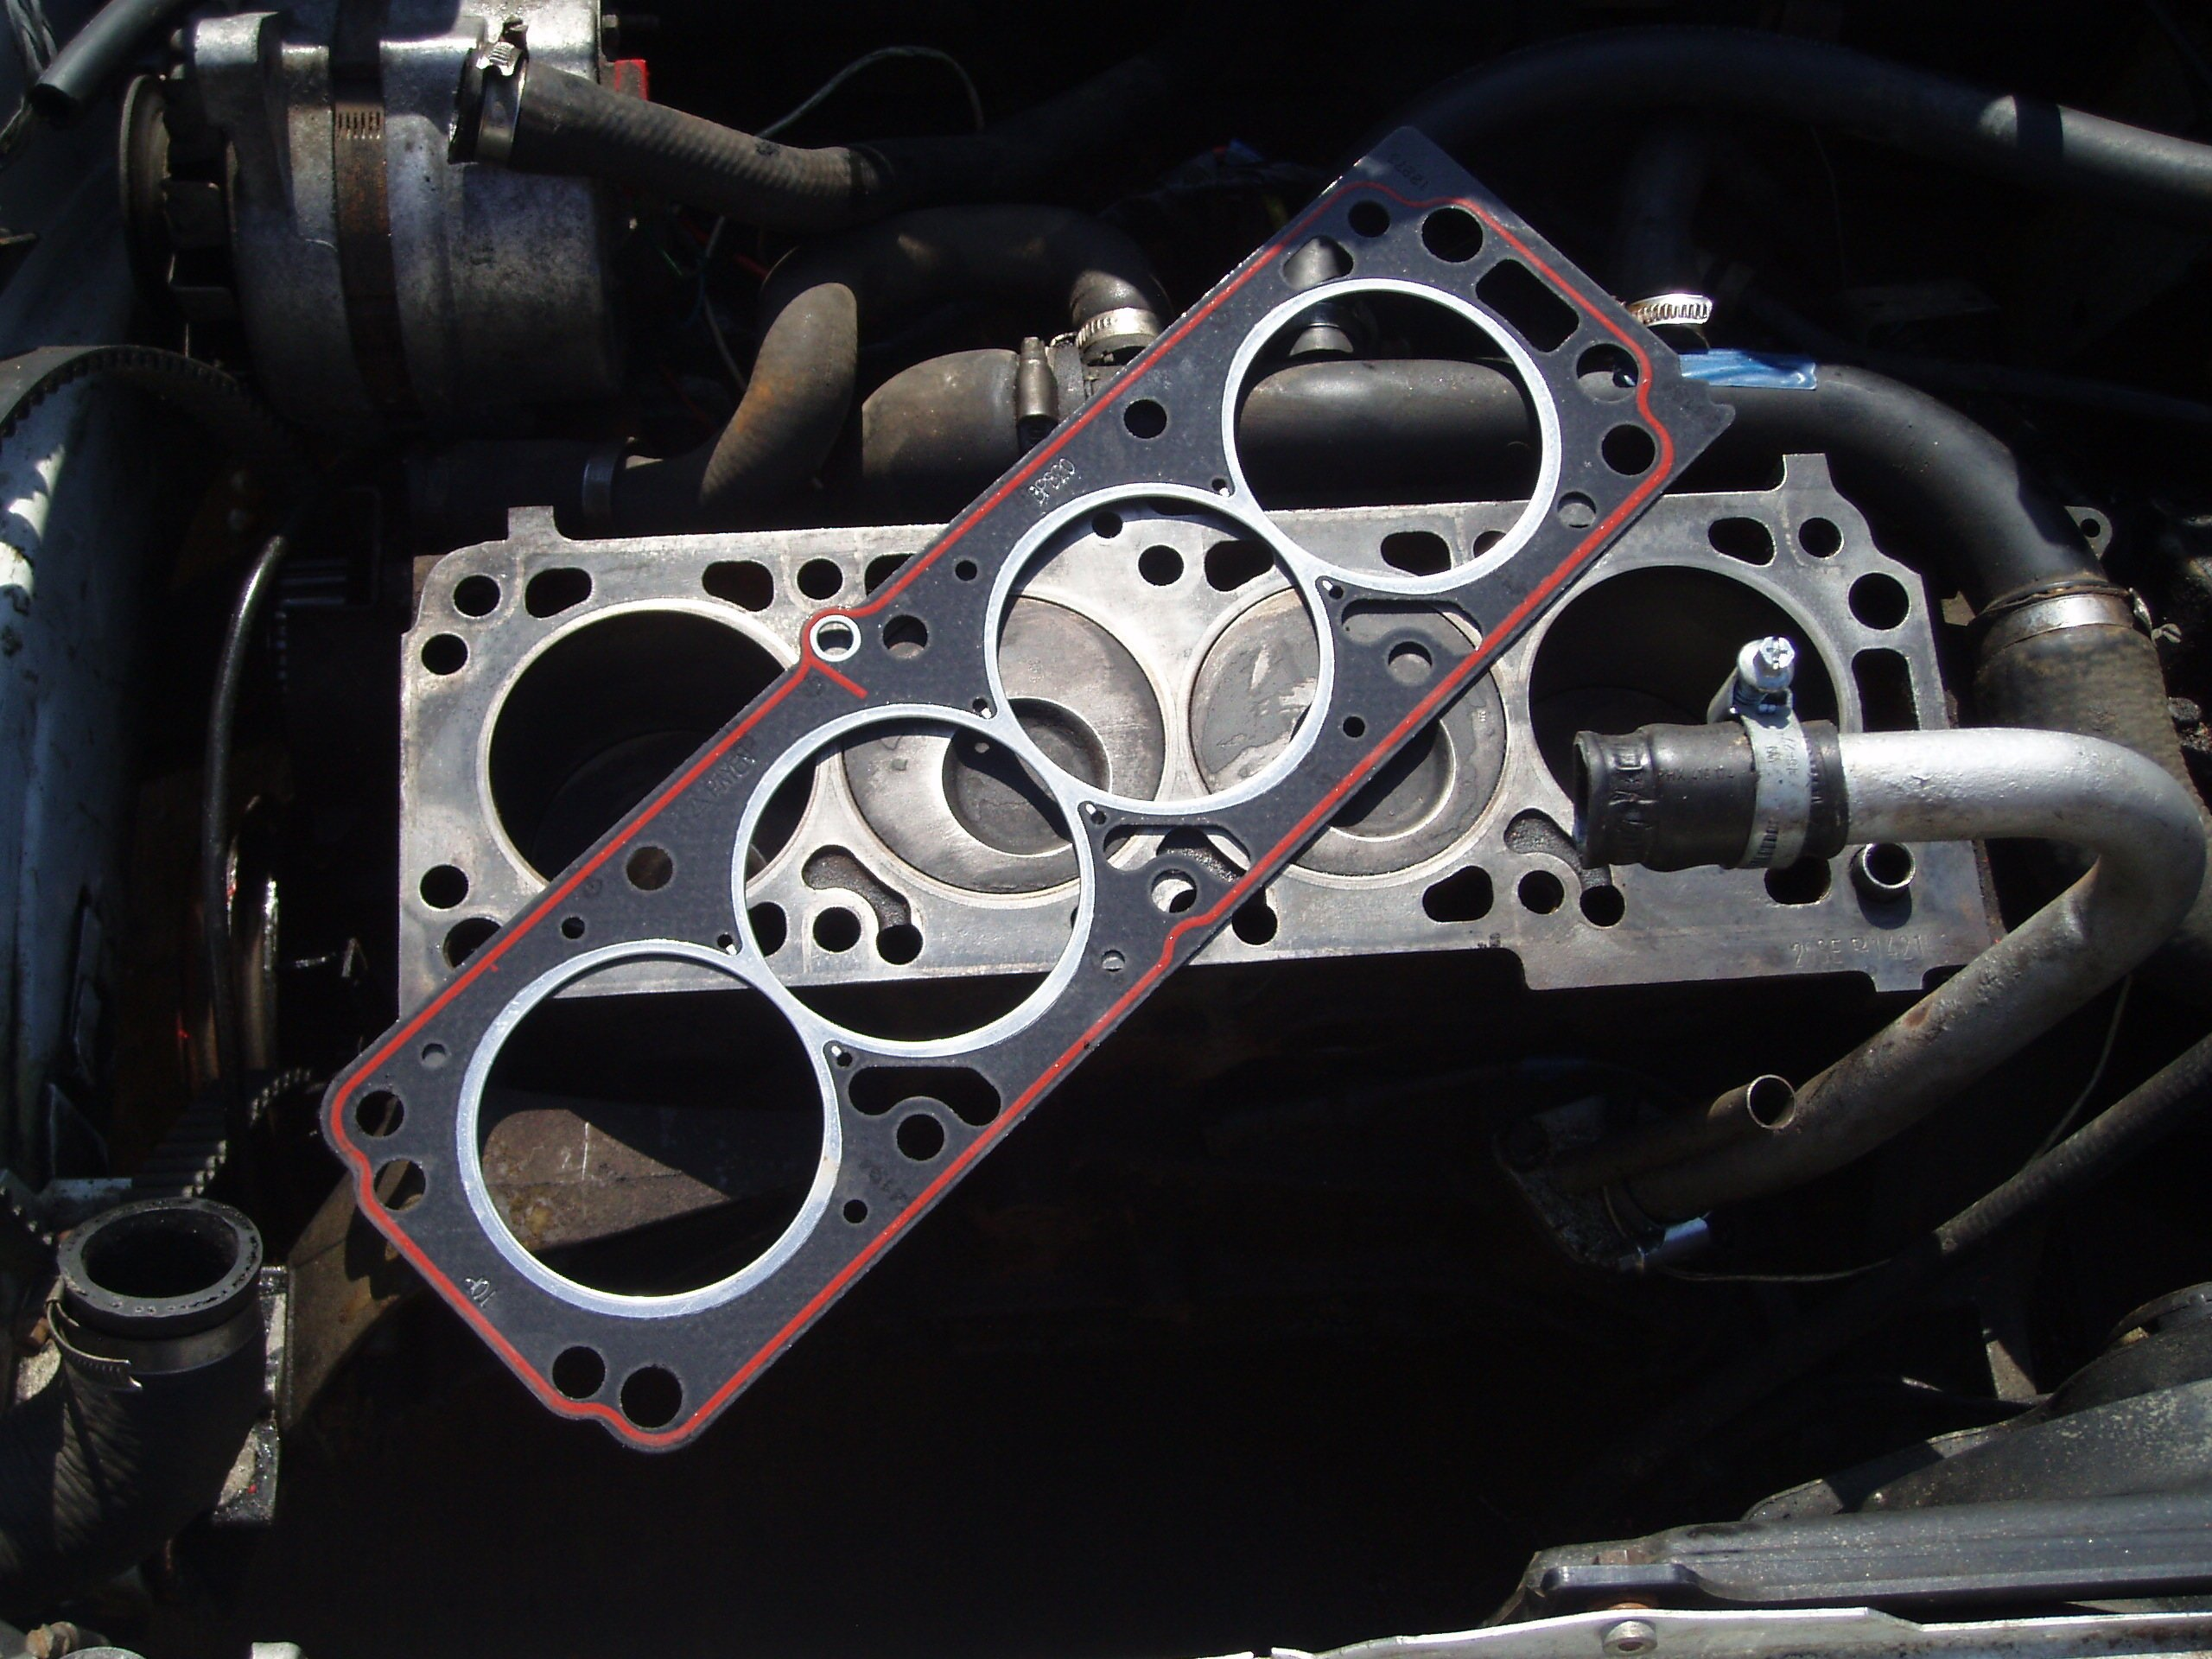 Blown Head Gasket Repair And Replacement Cost Information 02 Civic Si Engine Diagram What Is The